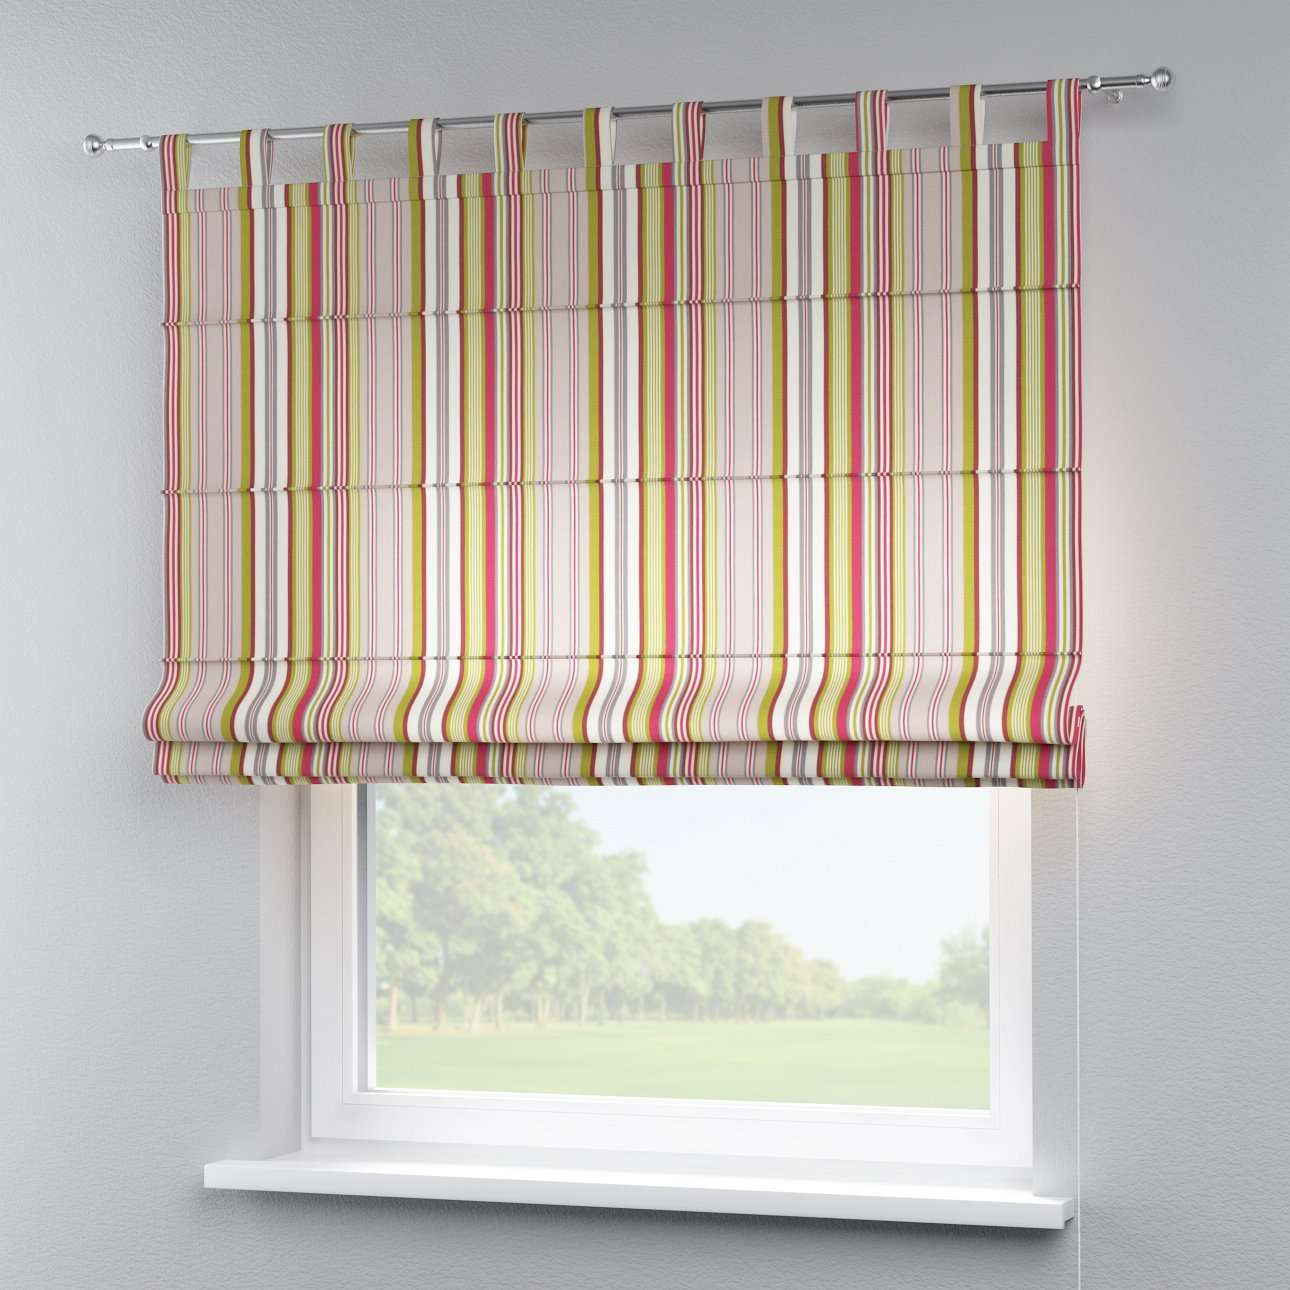 Verona tab top roman blind in collection Flowers, fabric: 311-16